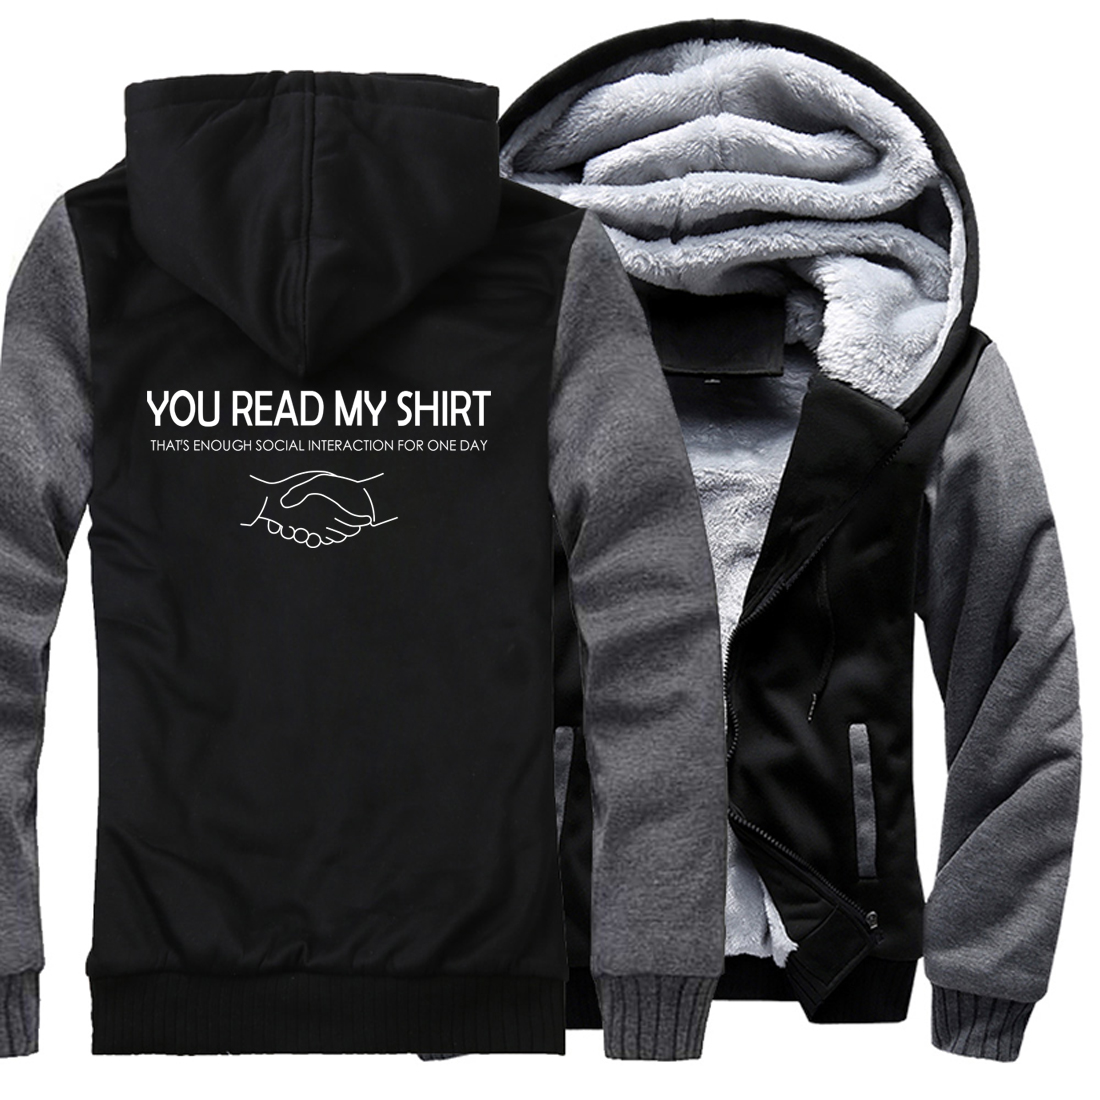 men casual hip-hop Brand clothes hooded You Read <font><b>My</b></font> Shirt That's Enough Social jackets 2018 winter male fitness coats sweatshirt